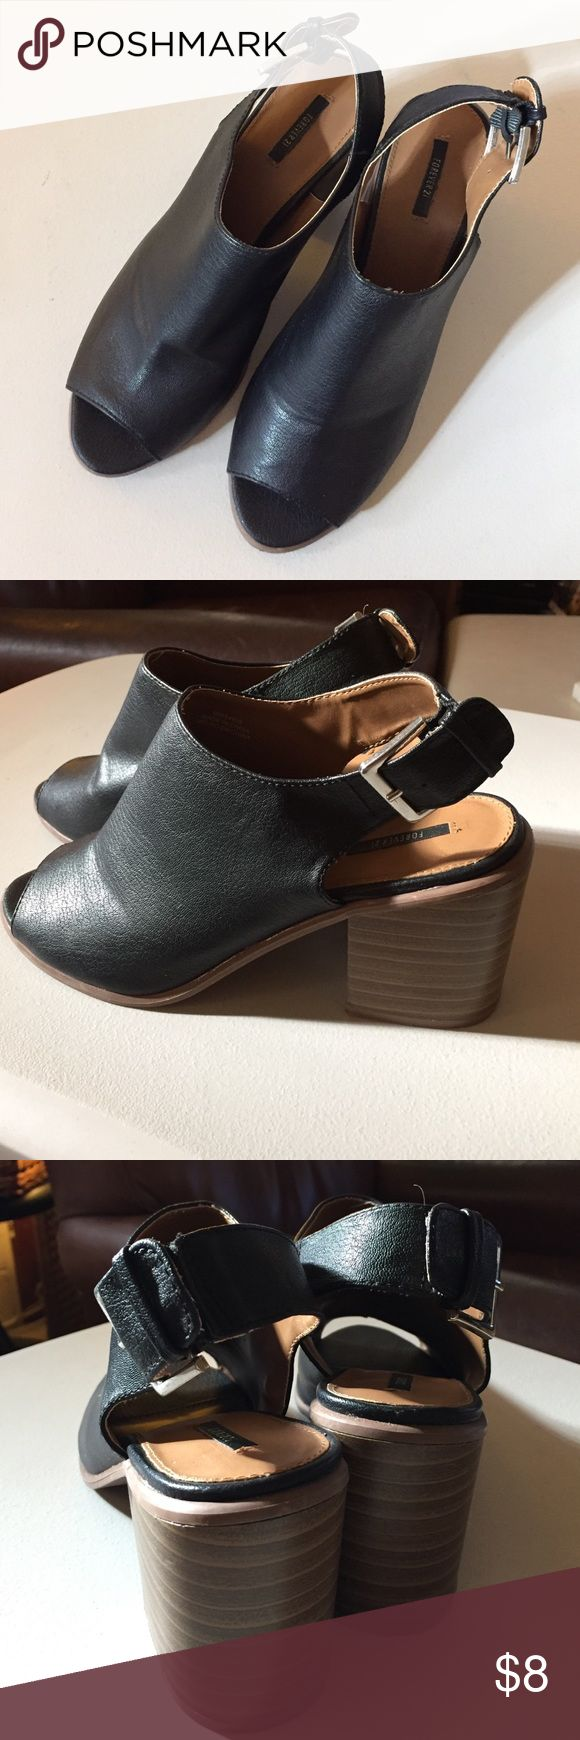 Forever 21 Chunky Heel Sandal Forever 21 Chunky Heel Sandal. Black faux leather uppers with silver colored buckle. Adjustable three hole strap. Chunky dark brown rubber heel that has some weight to it. A few light scuffs on the instep and heel, but no major issues. Forever 21 Shoes Sandals